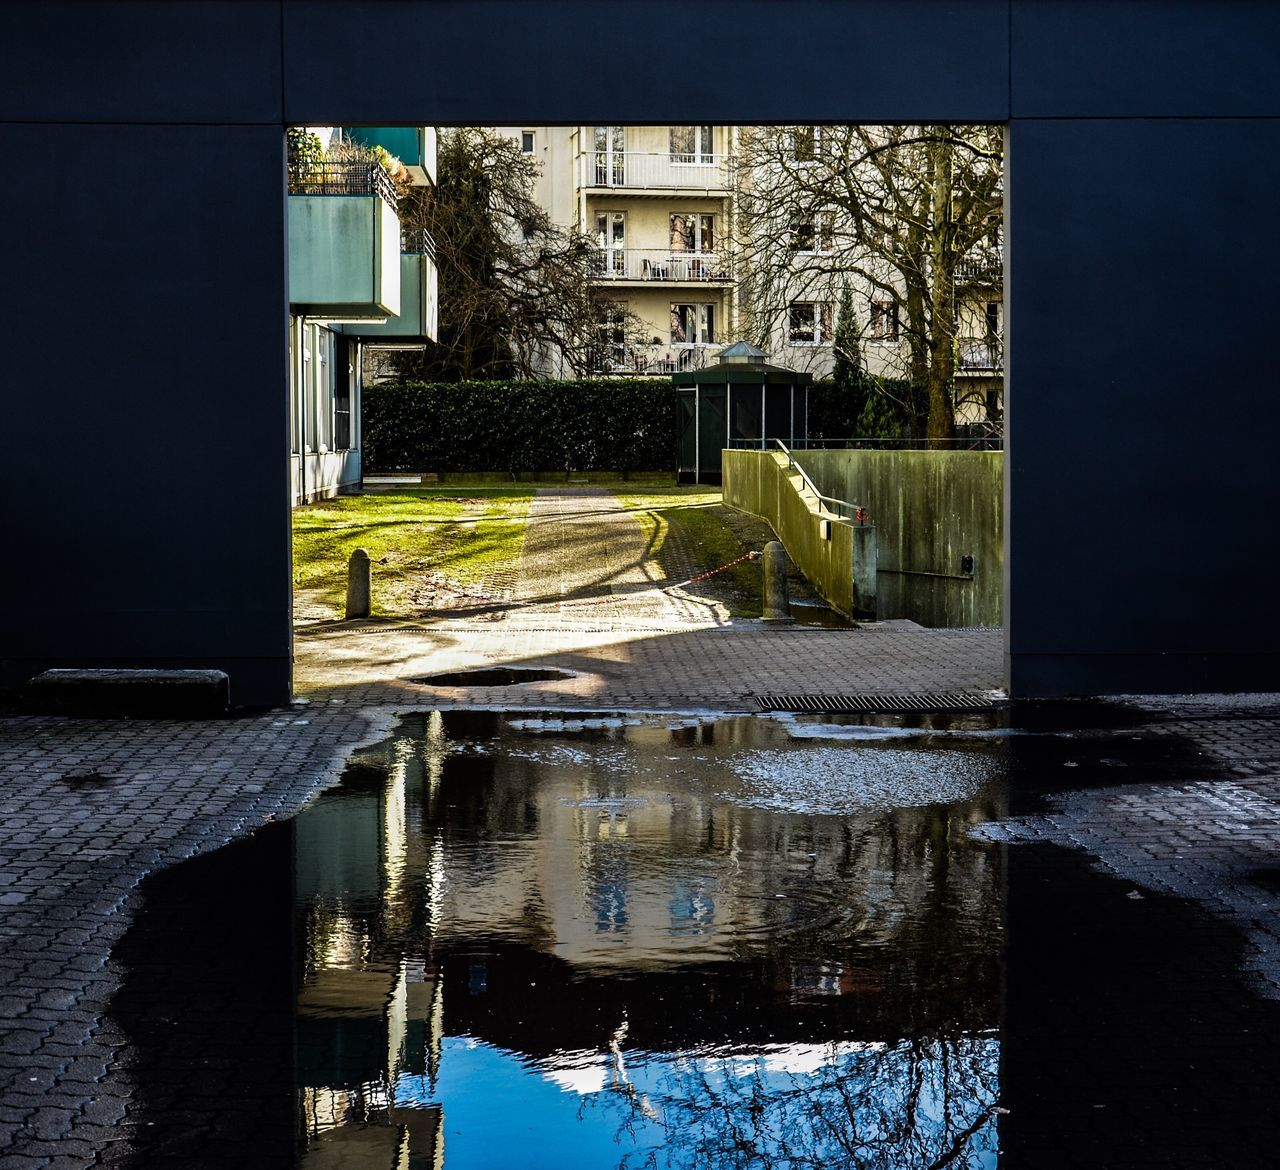 Behind The Wall Reflection Architecture Built Structure Water Building Exterior No People Tree Outdoors Nature Day Sky Puddle Reflection In Water Wall Behind The Wall Sunlight Green Light And Dark Go Through The Wall